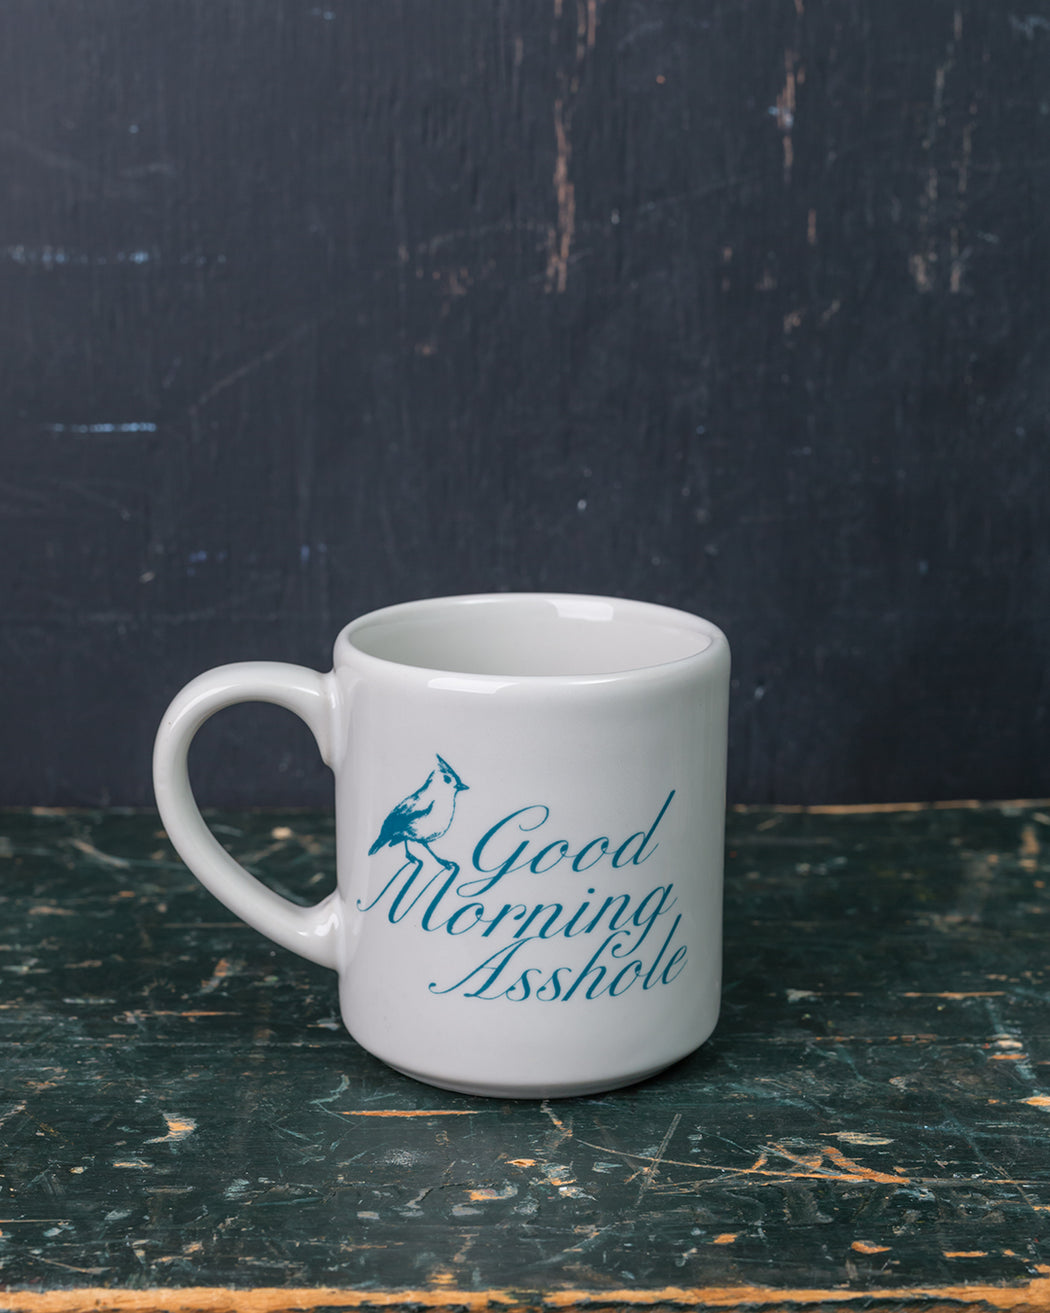 """Good Morning Asshole"" Mug - Fishs Eddy"